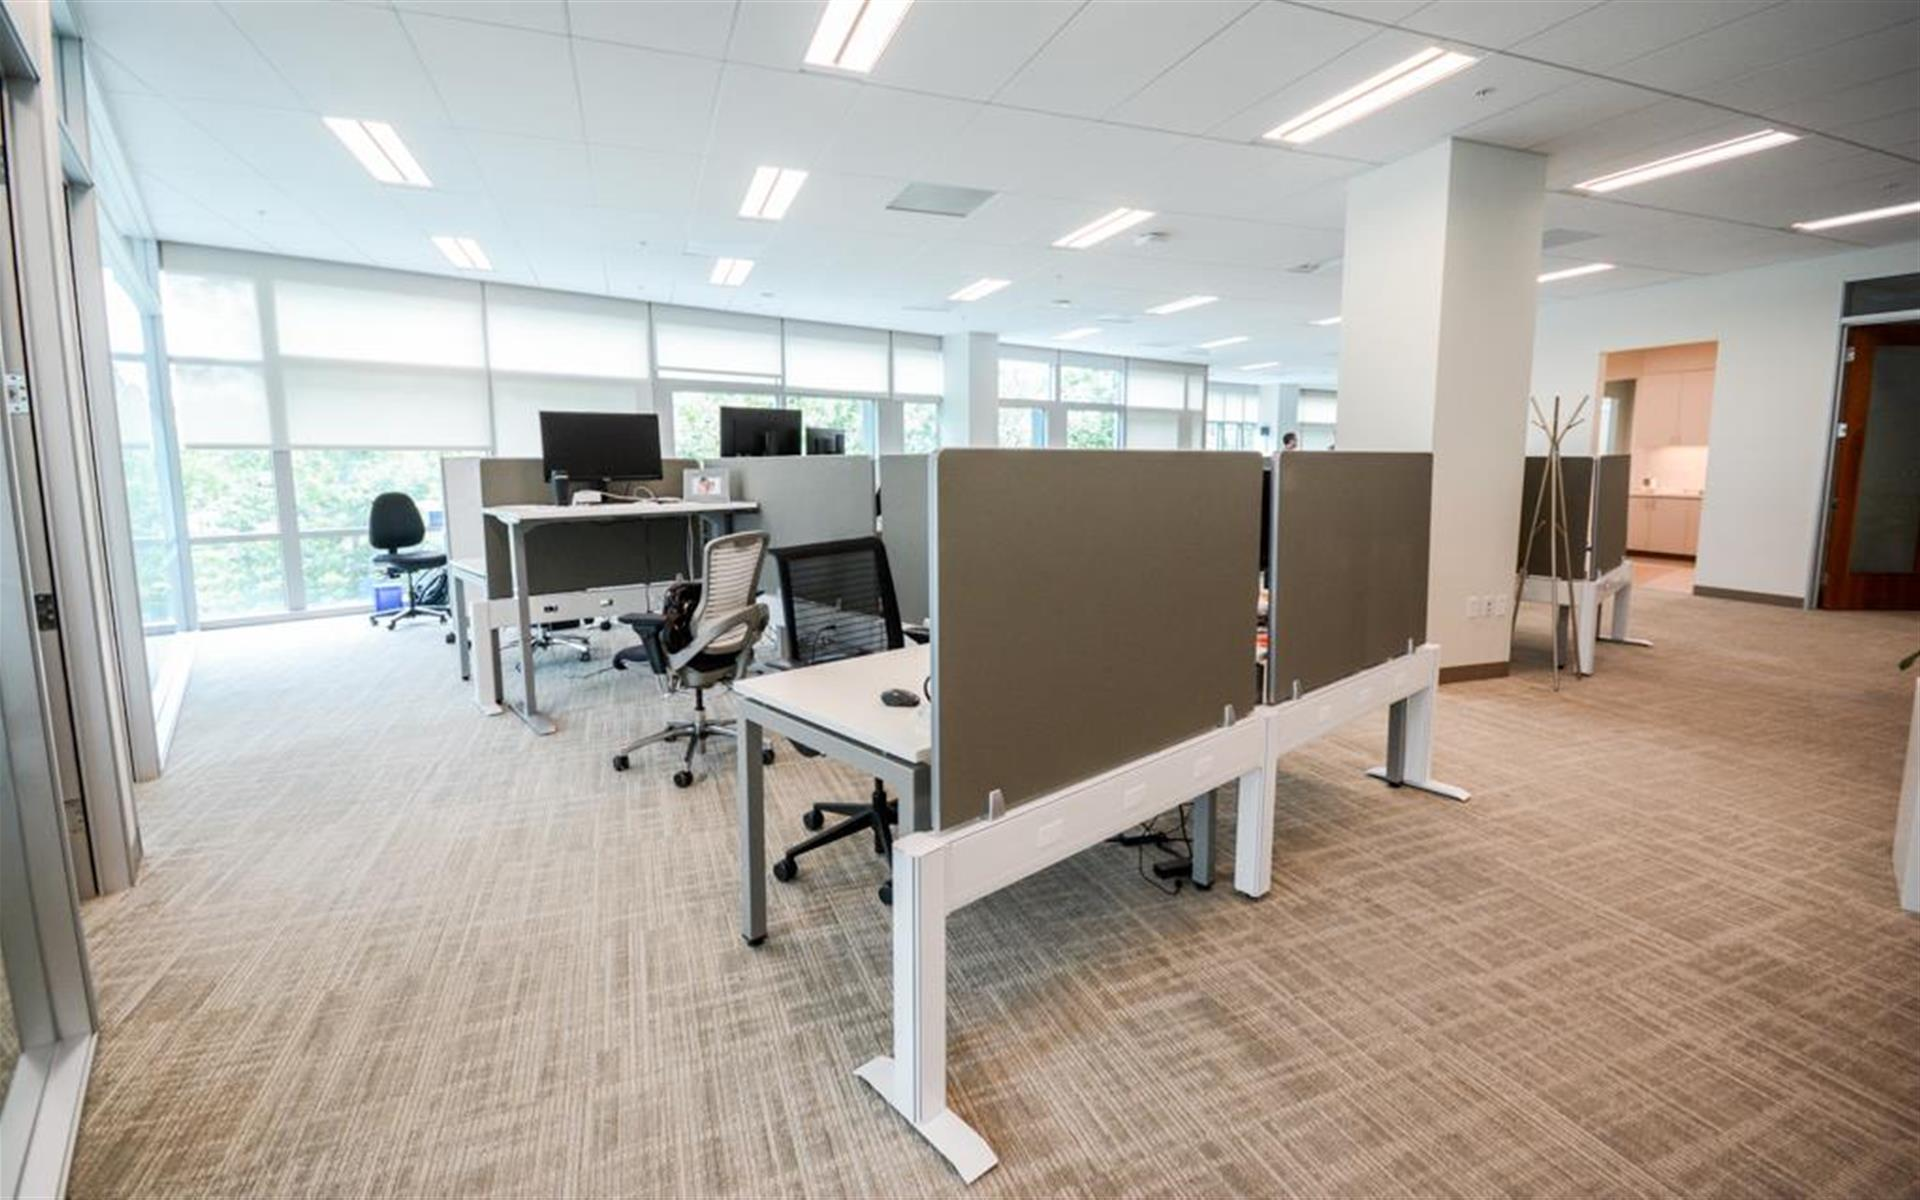 1050 Enterprise Way - Dedicated Desks for 30+